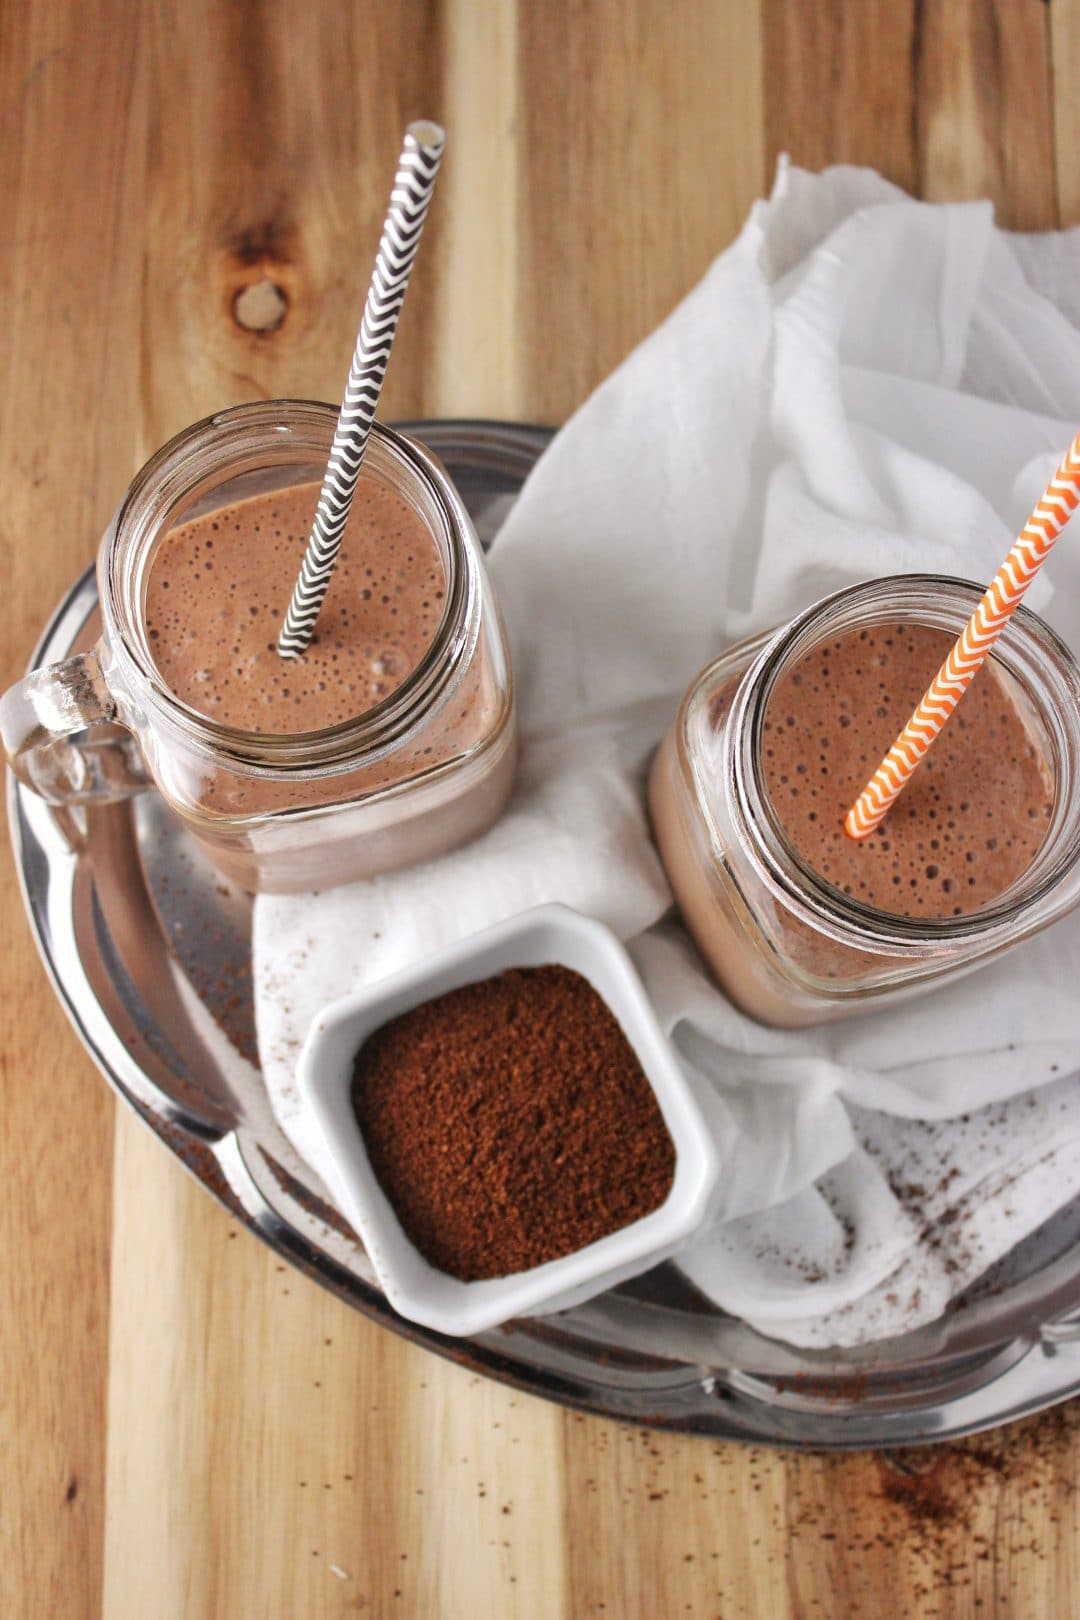 Chocolate Banana Mocha Smoothie - This easy recipe makes a healthy smoothie that has everything that would make it absolutely delicious. simplylakita.com #smoothie #mocha